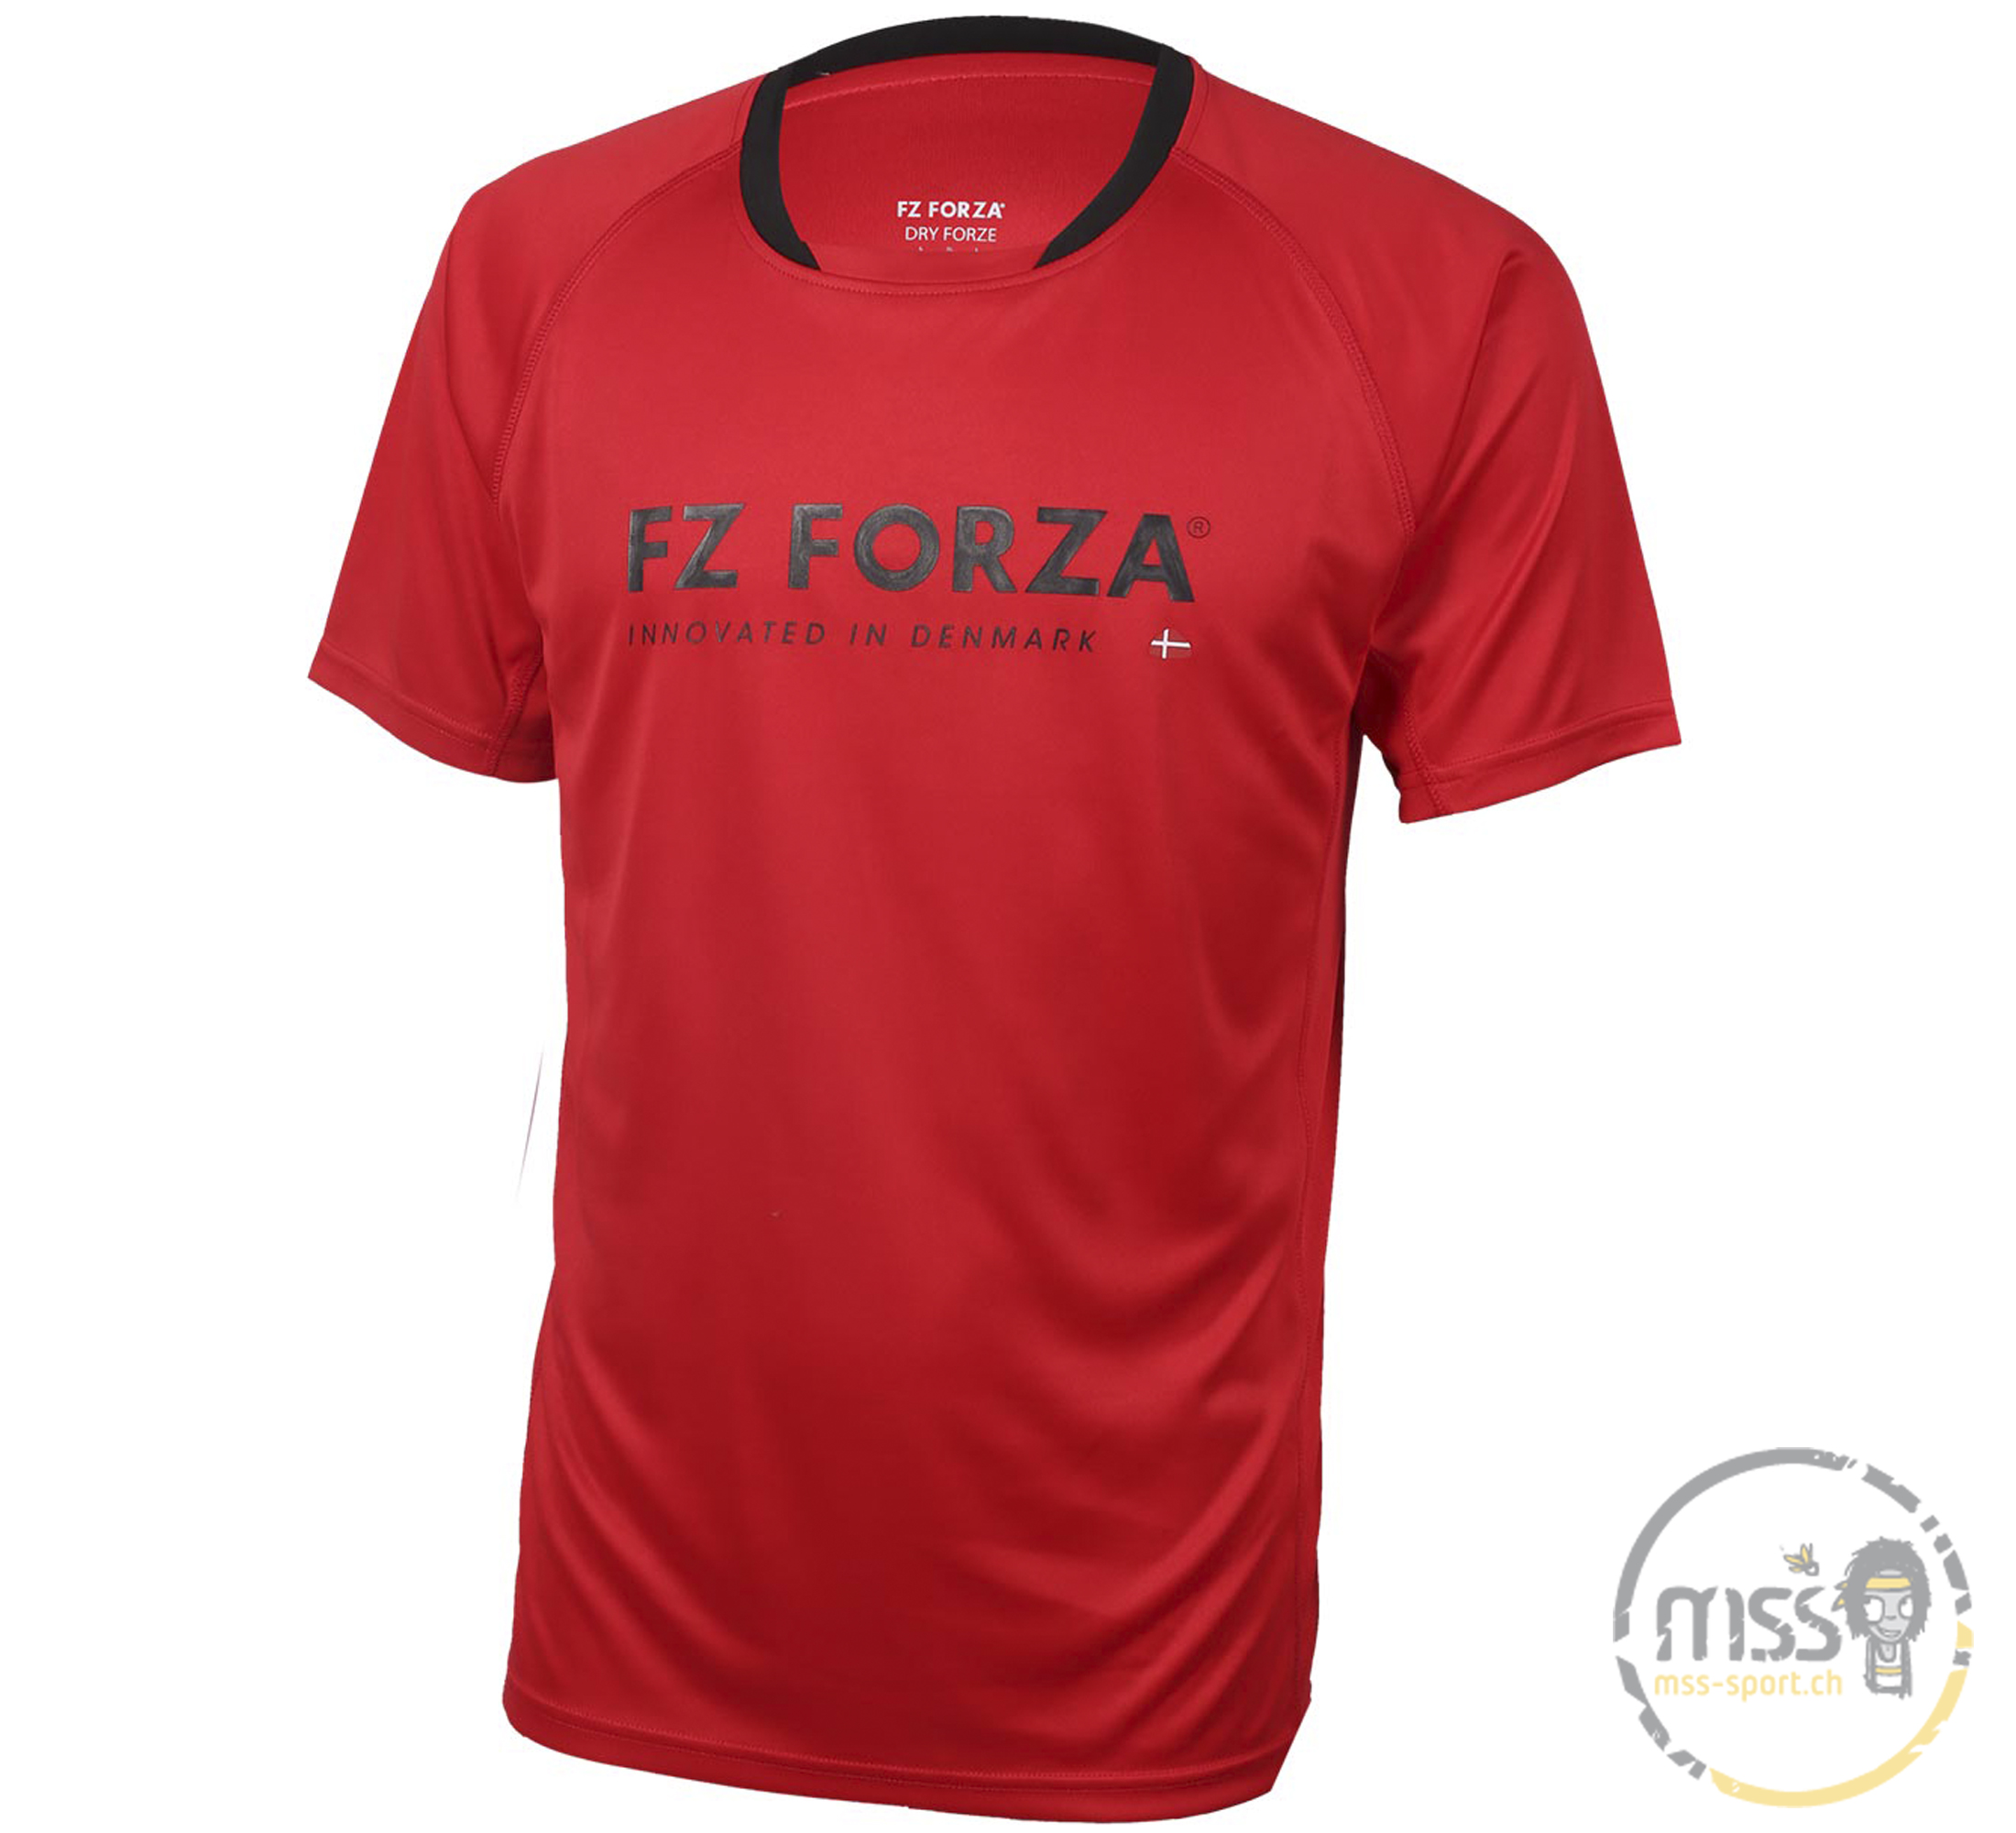 Forza Shirt Bling Tee chinese red